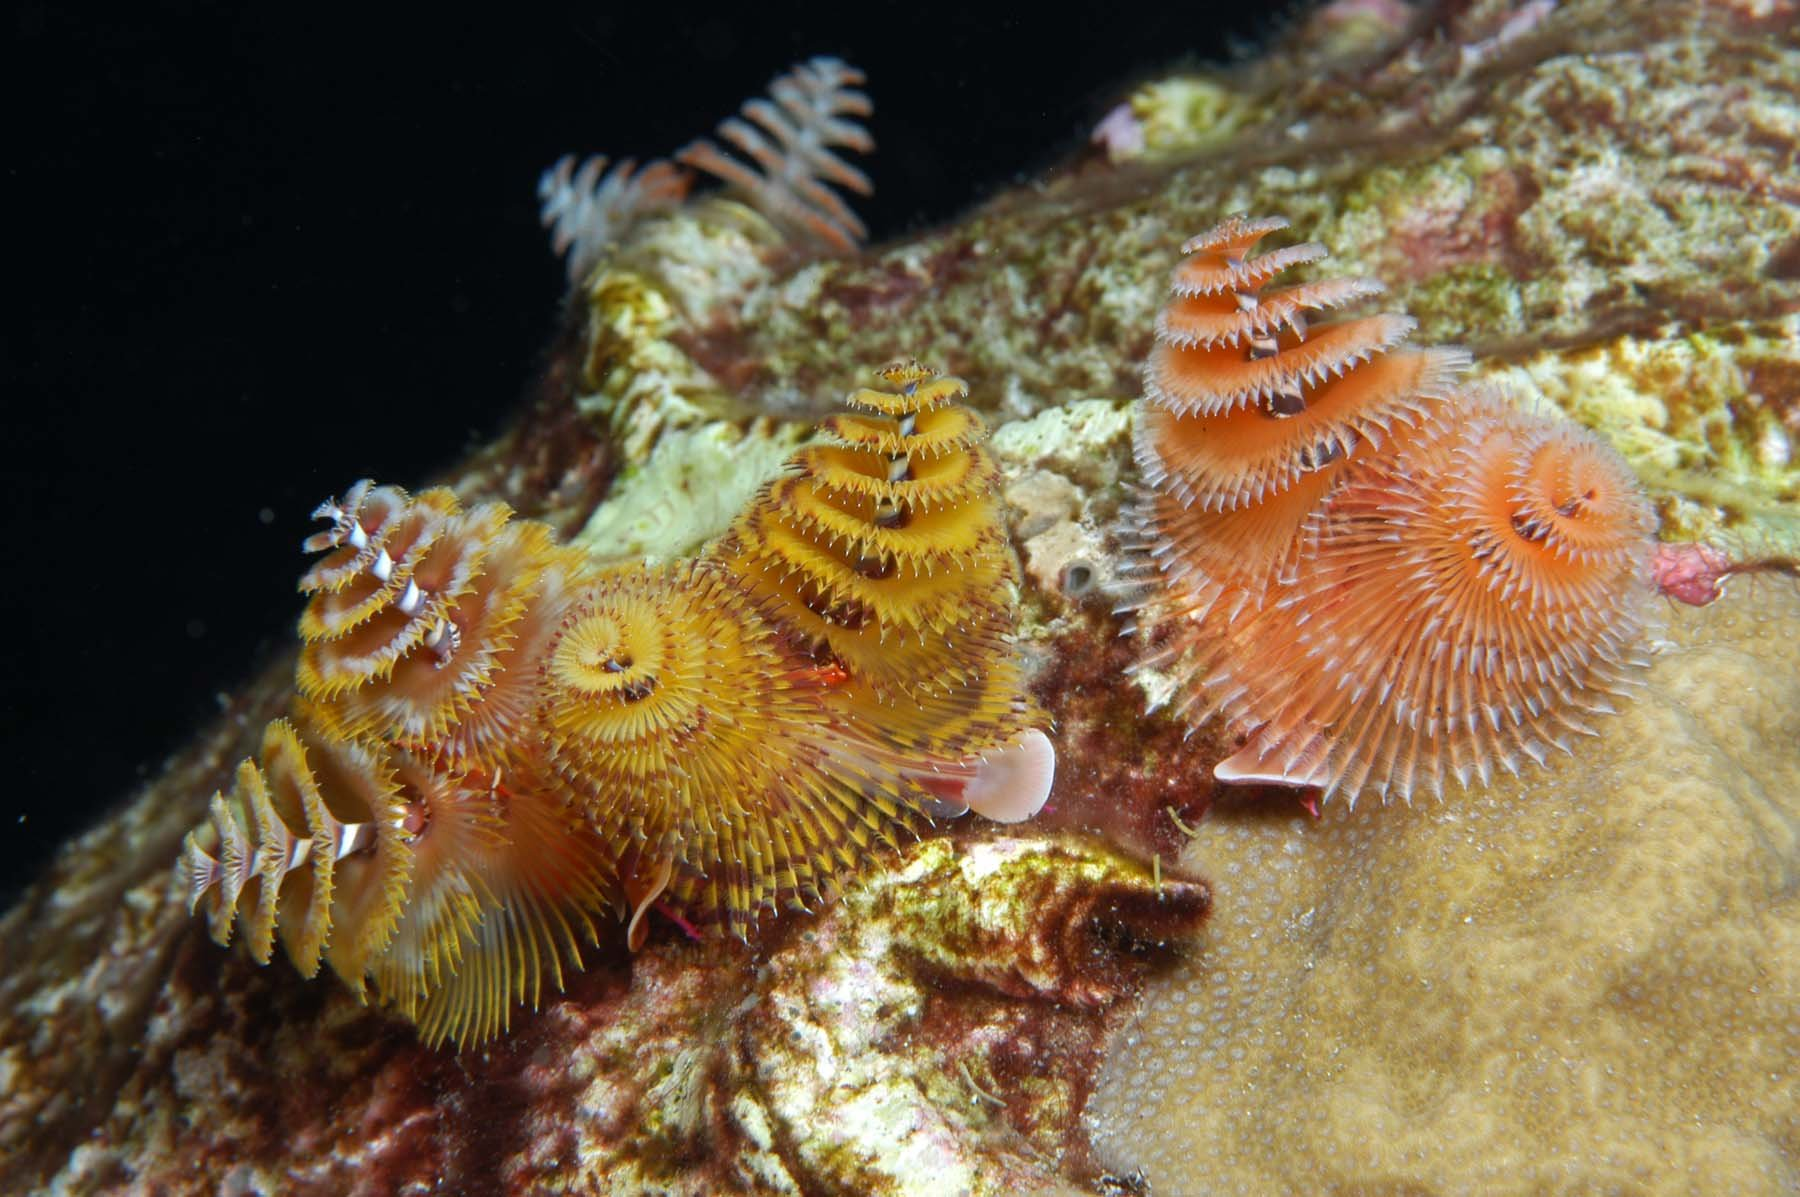 A GREAT essay on polychaetes fr @OceanPortal @SmithsonianMag for #InternationalPolychaeteDay https://t.co/7lBS16oh0g https://t.co/8xCJPwhFNh